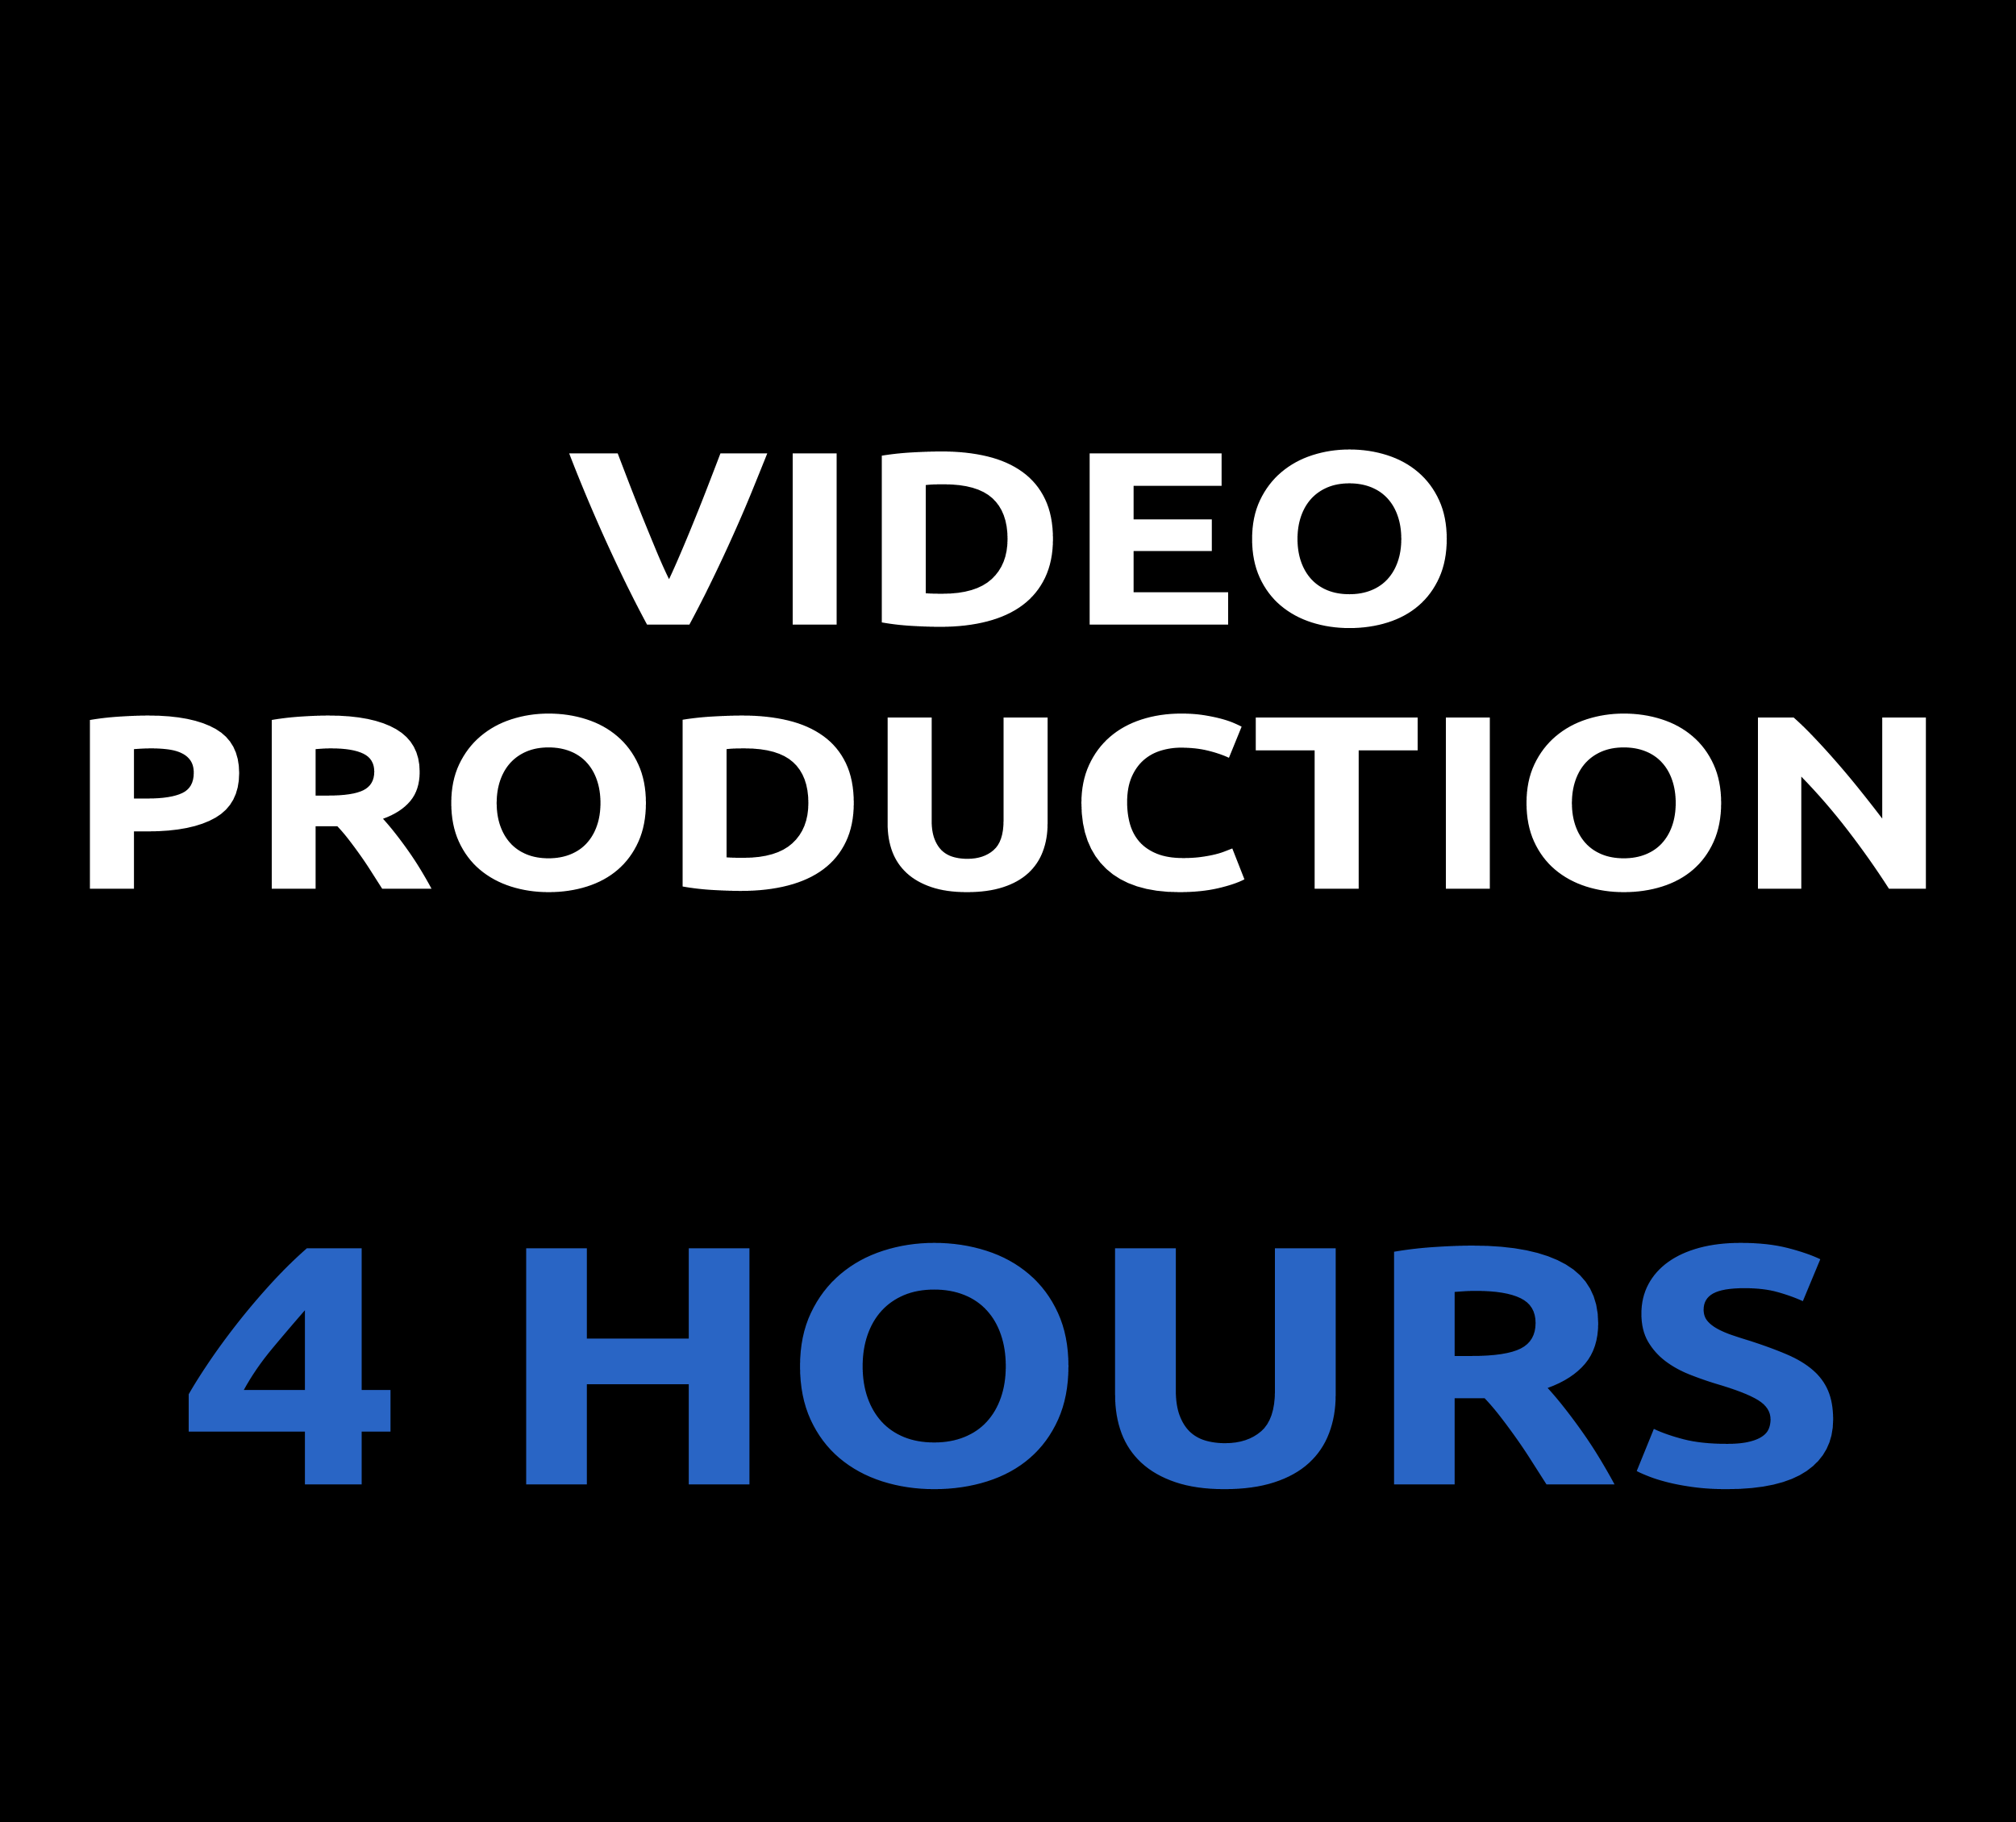 VIDEO PRODUCTION- 4 HOURS 07